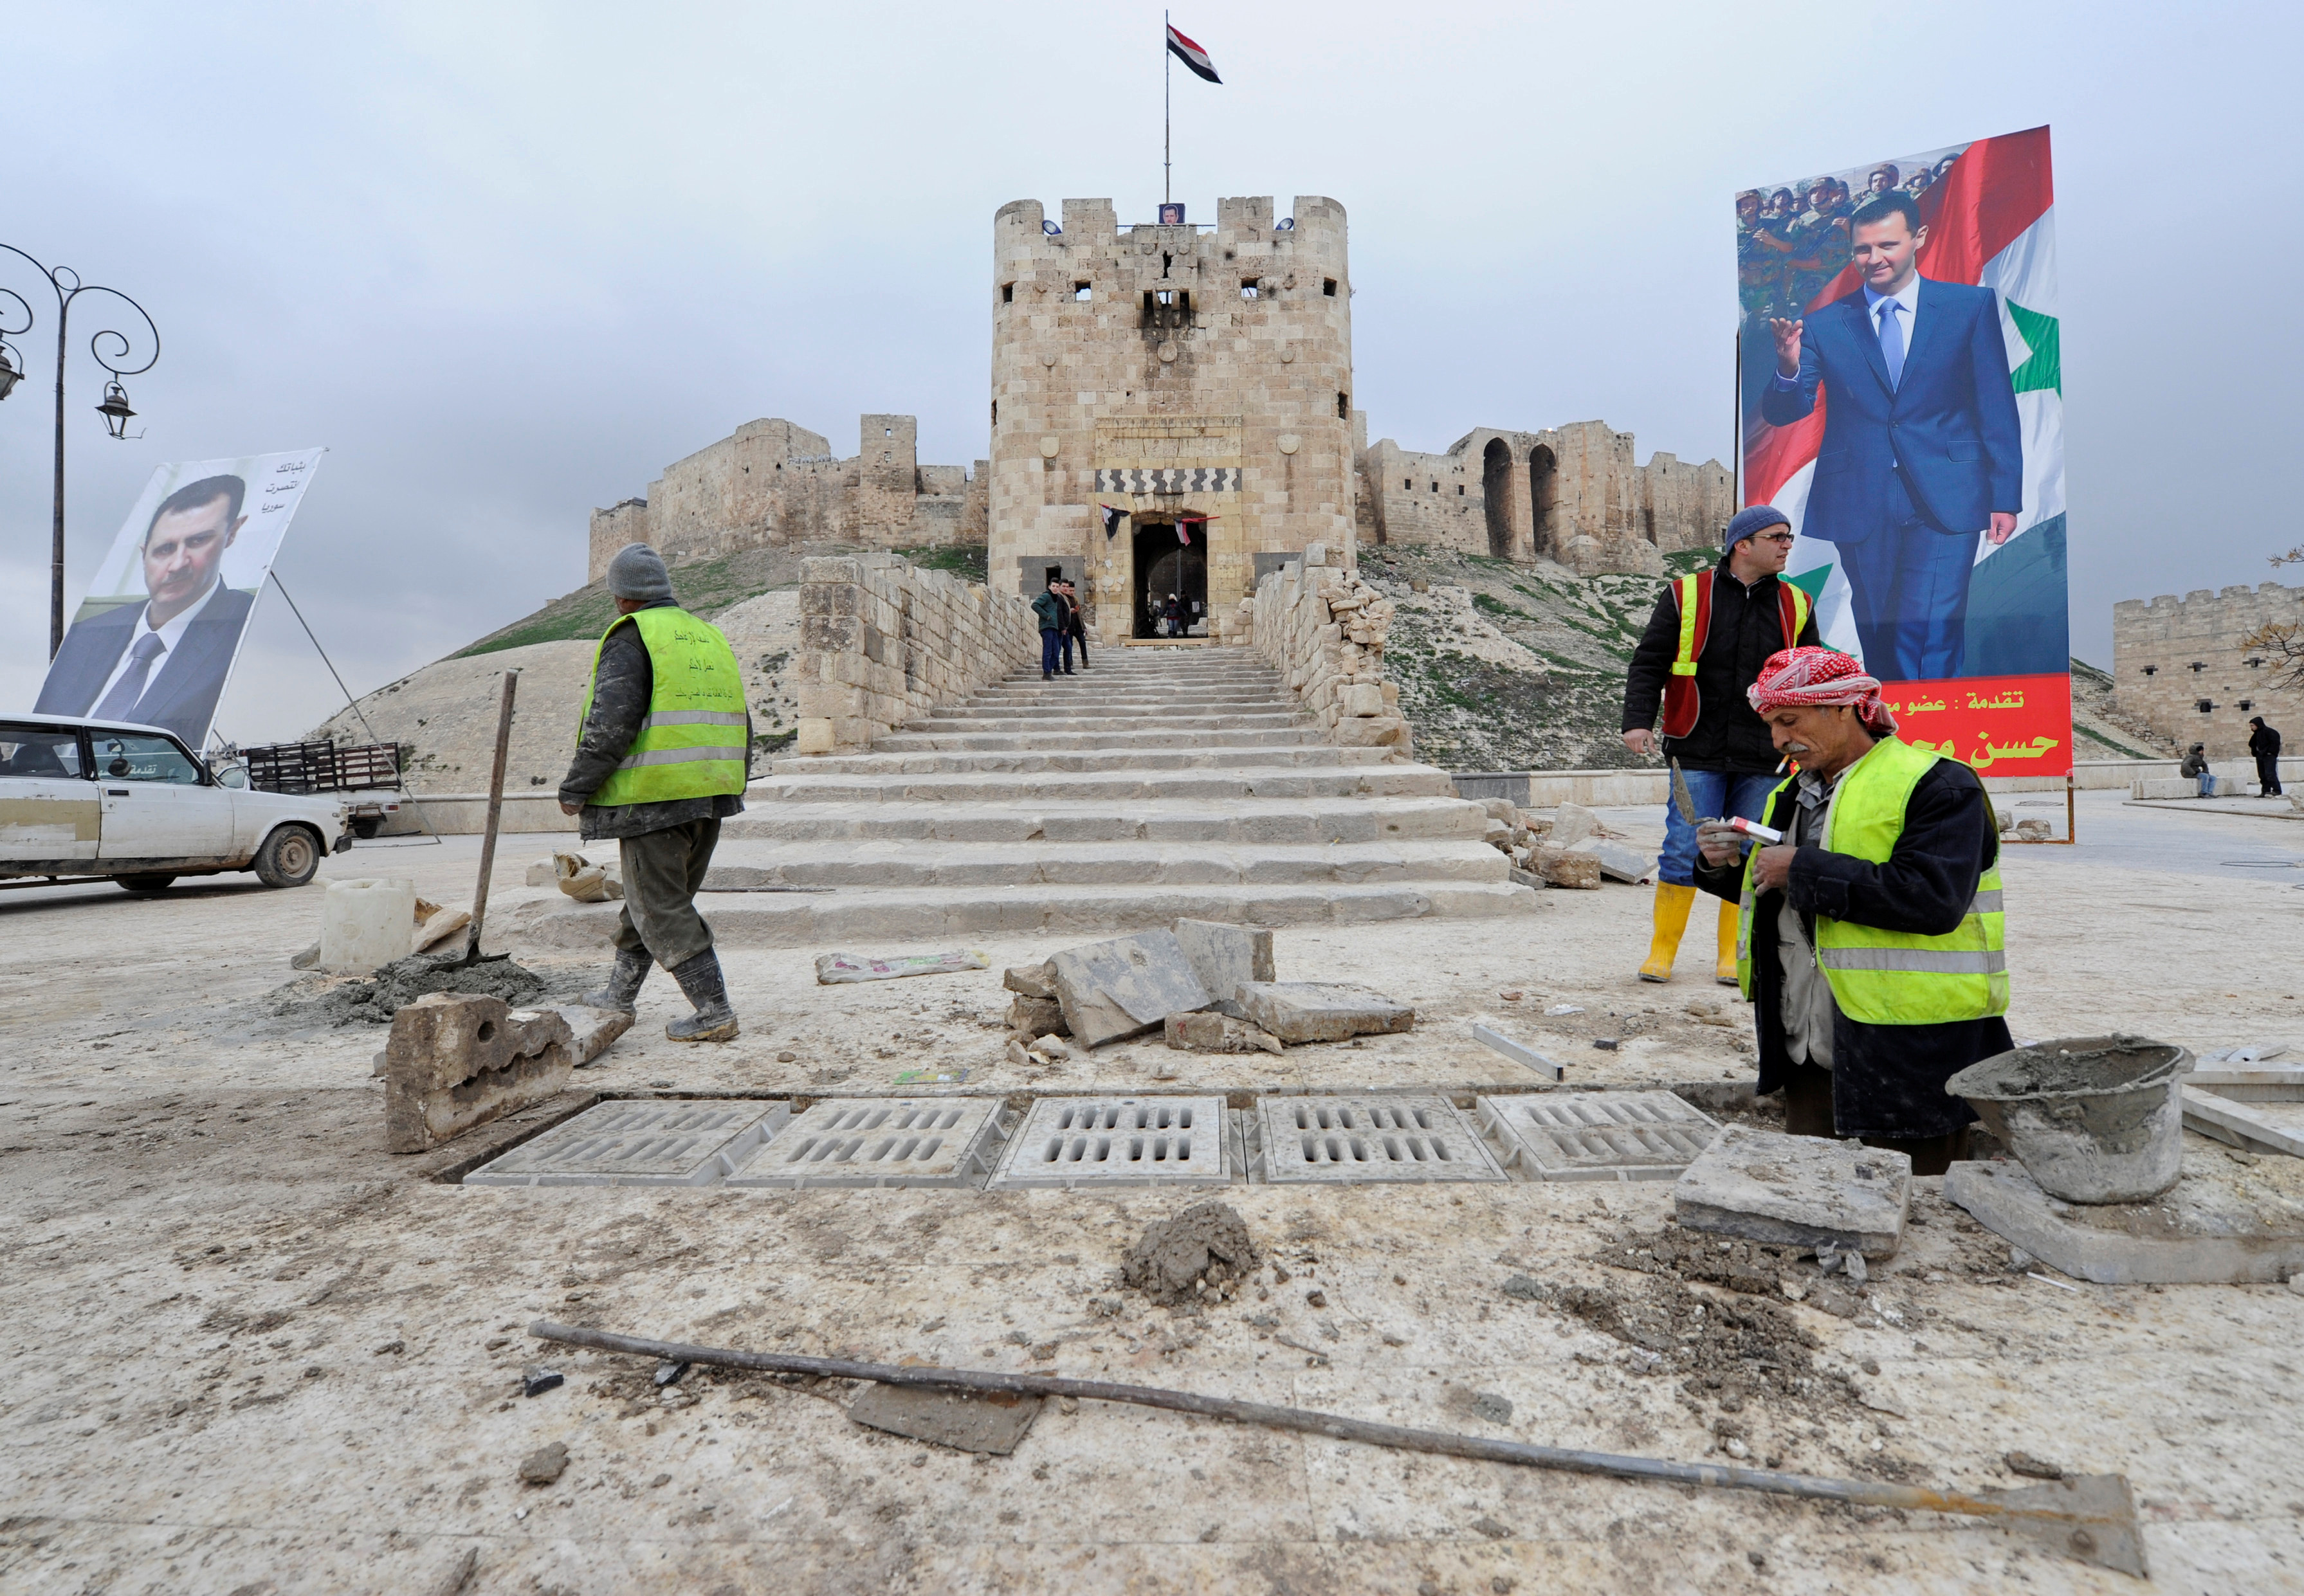 Workers repair the damage in front of Aleppo's historic citadel, as posters depicting Syria's President Bashar al-Assad are erected in the Old City of Aleppo, Syria January 31, 2017. REUTERS/Omar Sanadiki - RTX2Z0RF